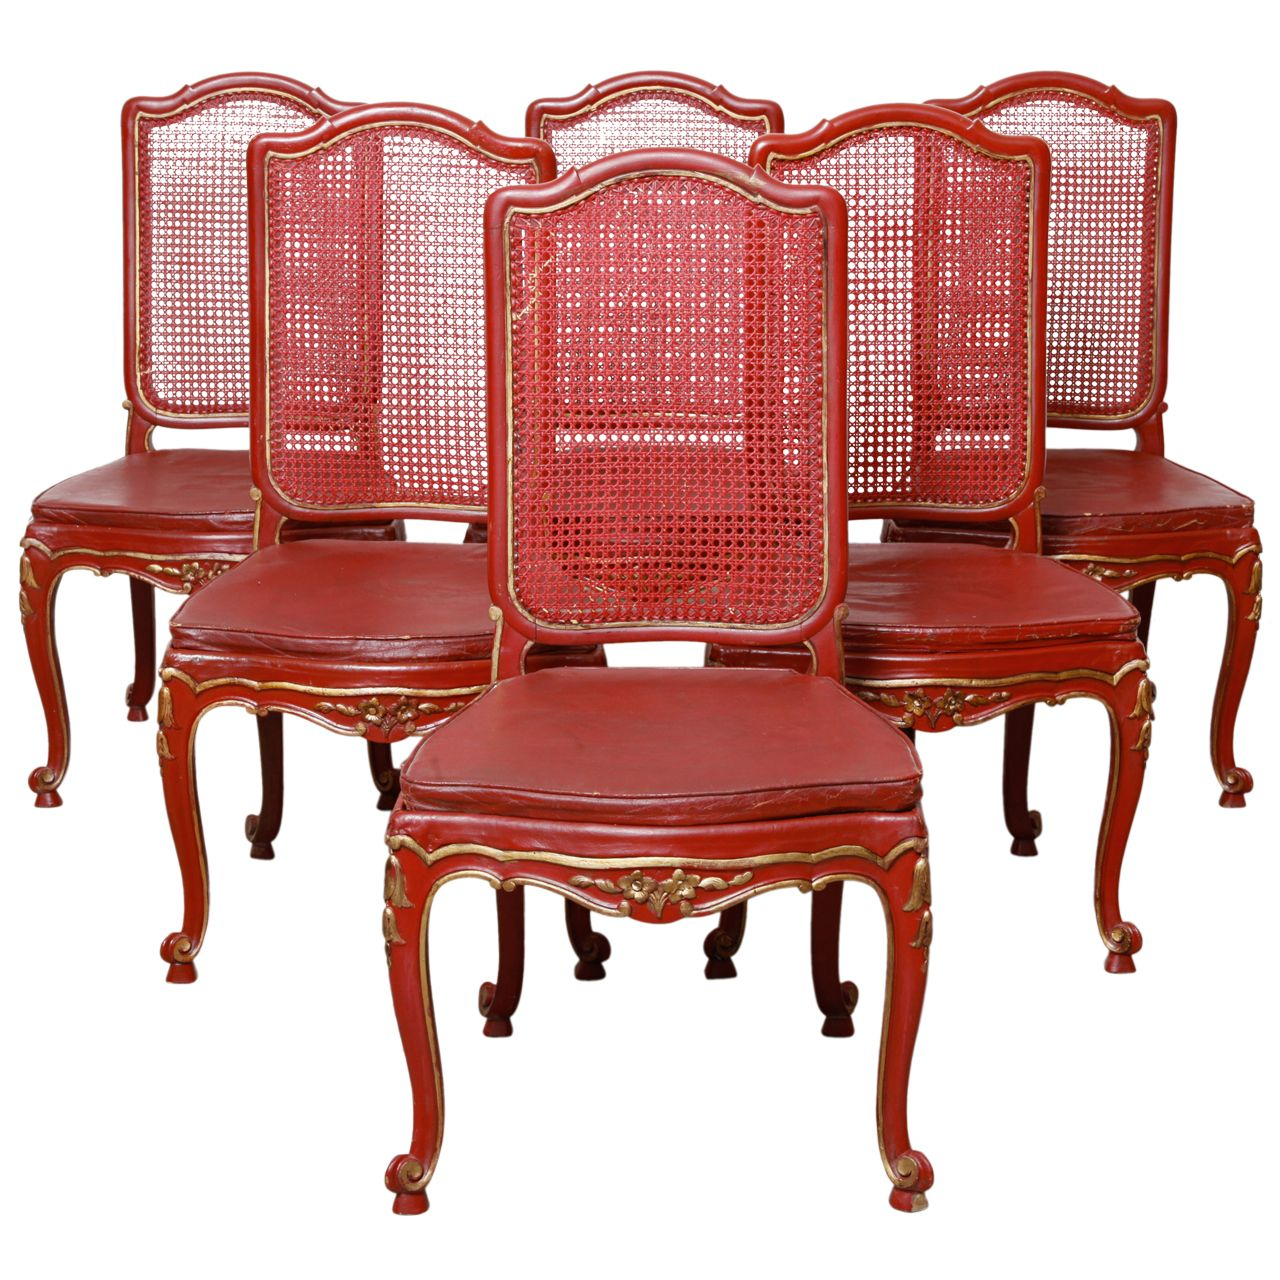 red lacquered furniture. Set Of Six Red Lacquered English Chinoiserie Style Dining Chairs Furniture